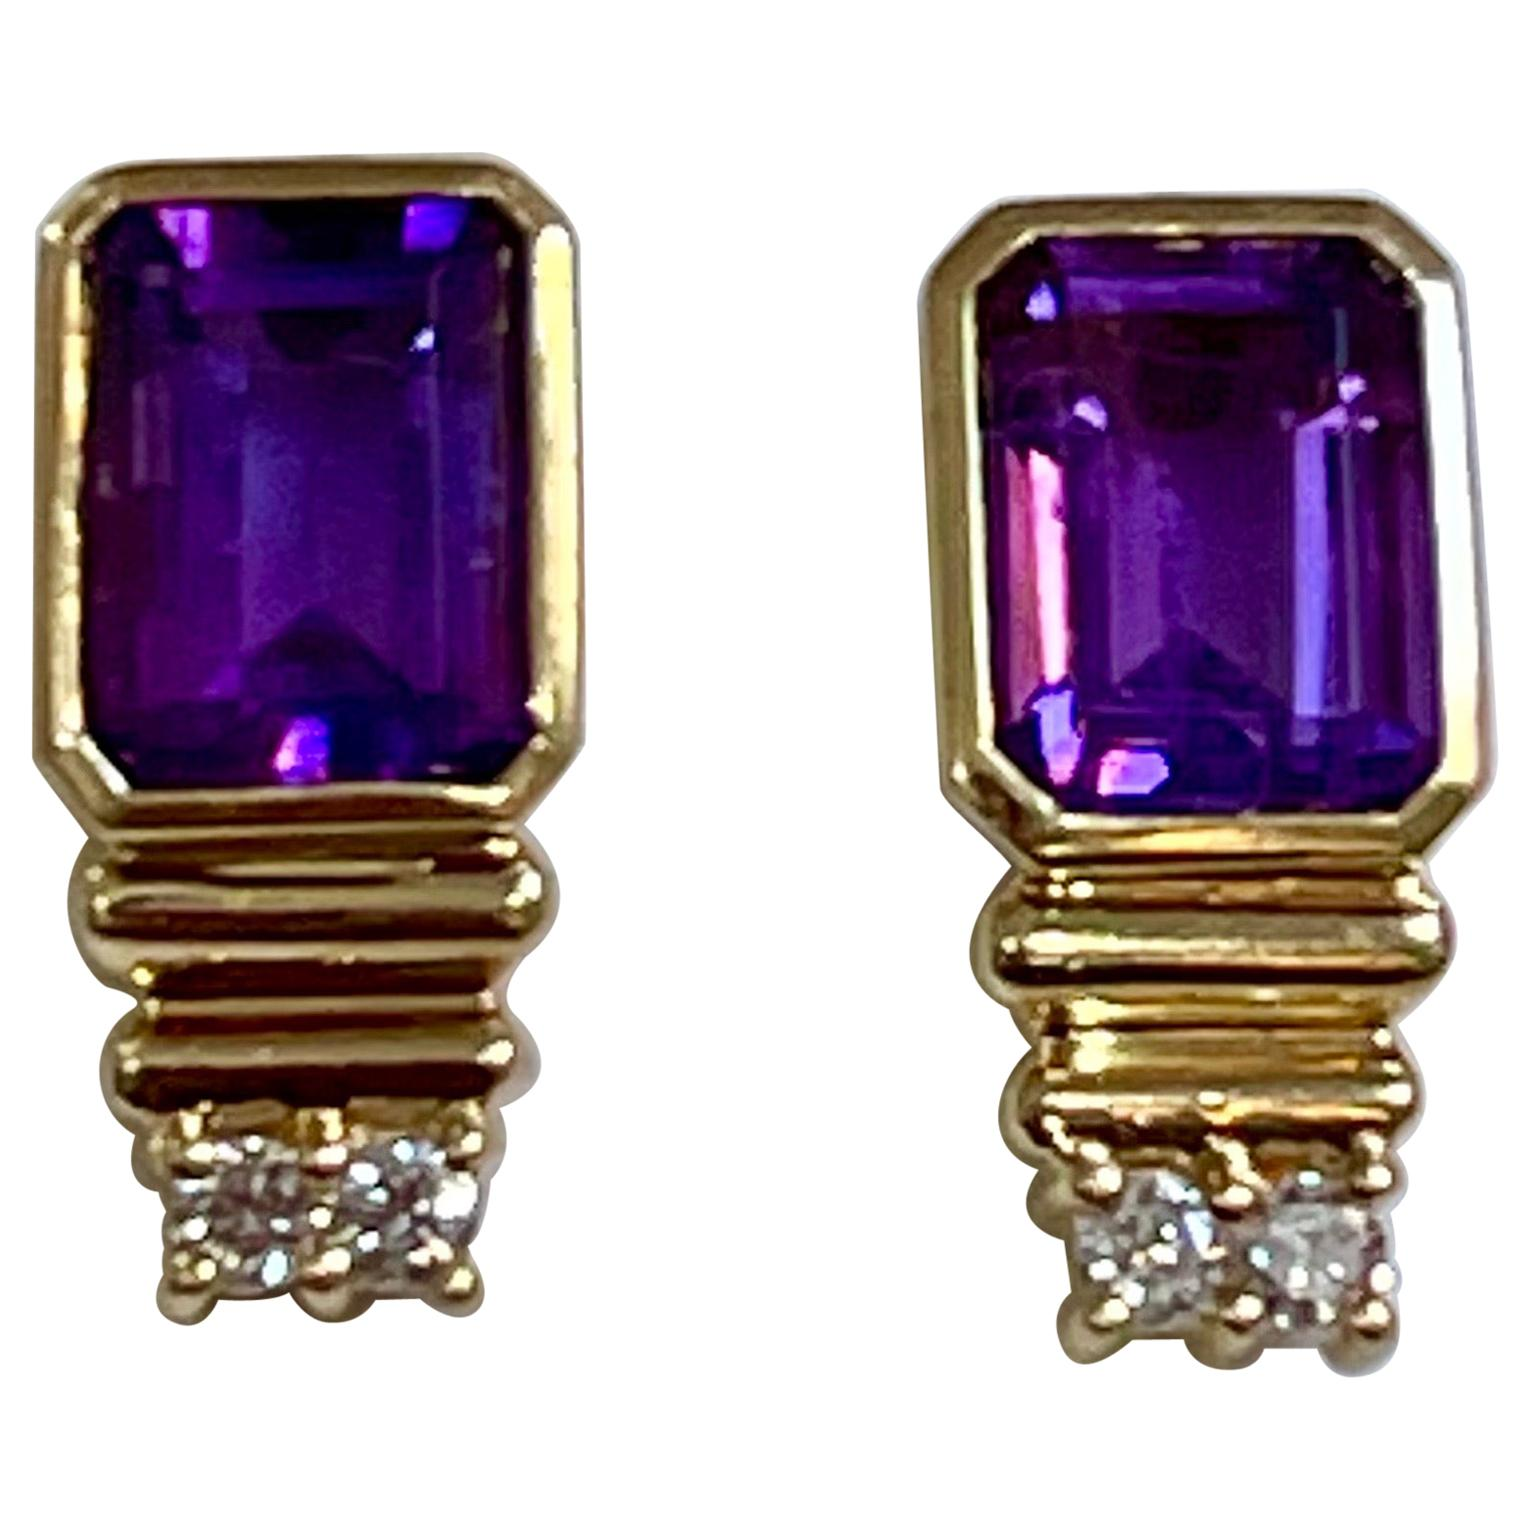 3 Carat Amethyst and Diamond 14 Karat Yellow Gold Earrings, Stud Post Earring